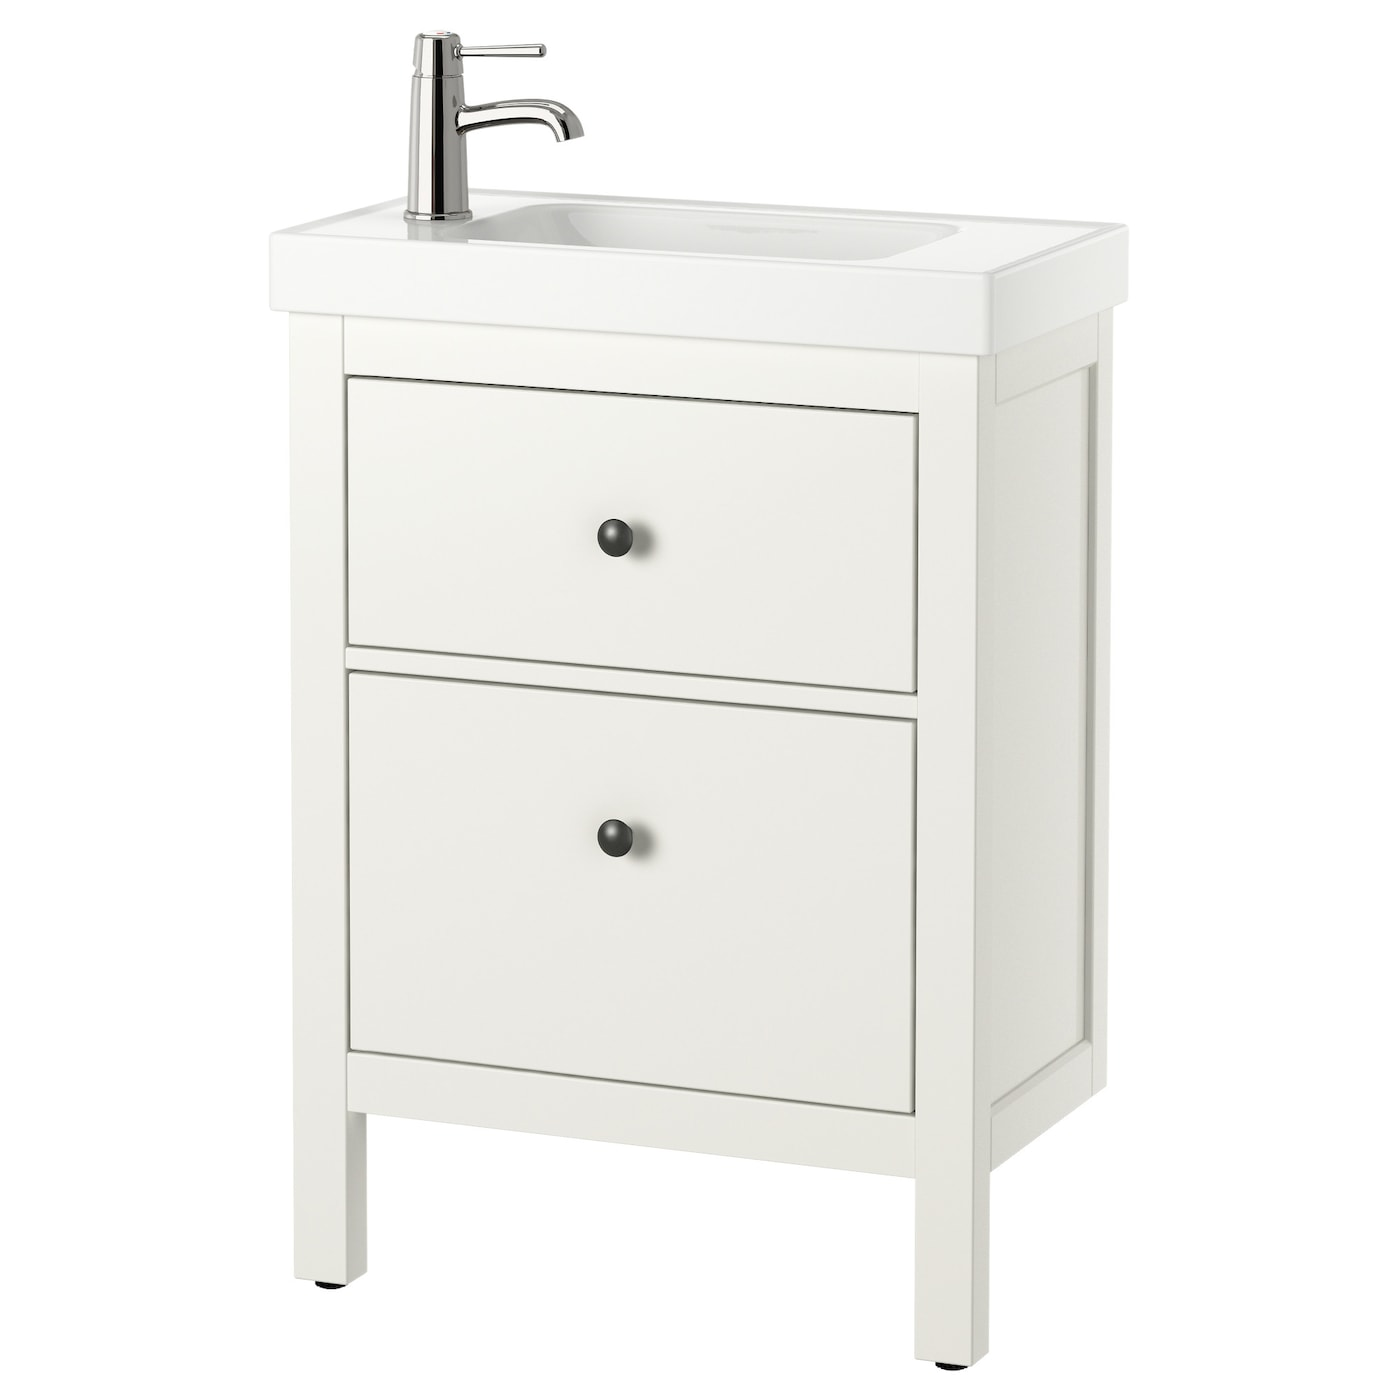 hemnes hagaviken meuble lavabo 2tir blanc 63 x 34 x 90 cm ikea. Black Bedroom Furniture Sets. Home Design Ideas